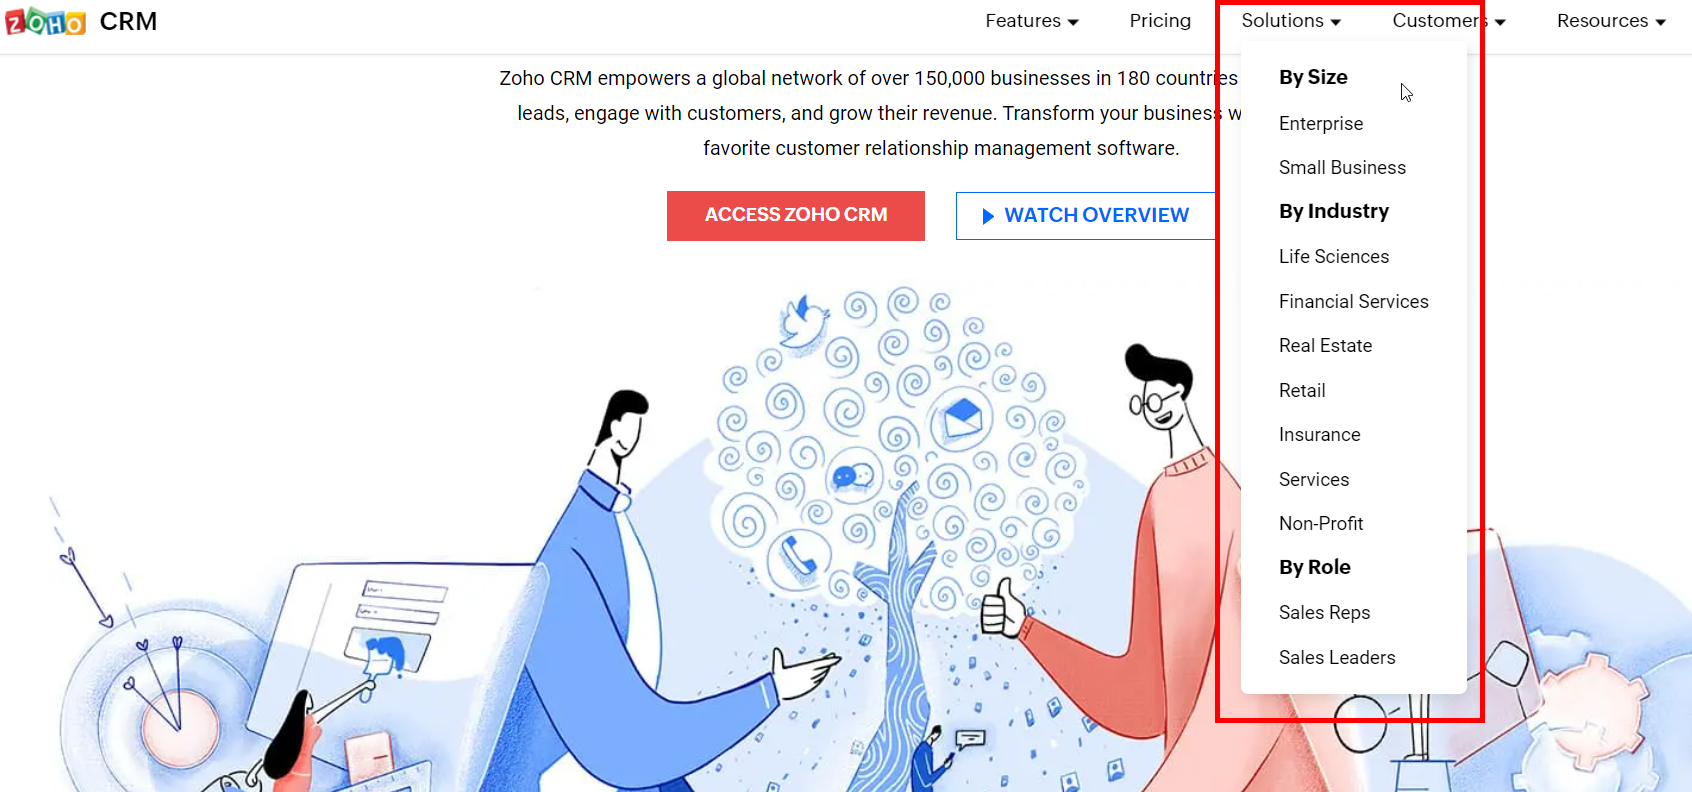 Solutions offered by Zoho CRM